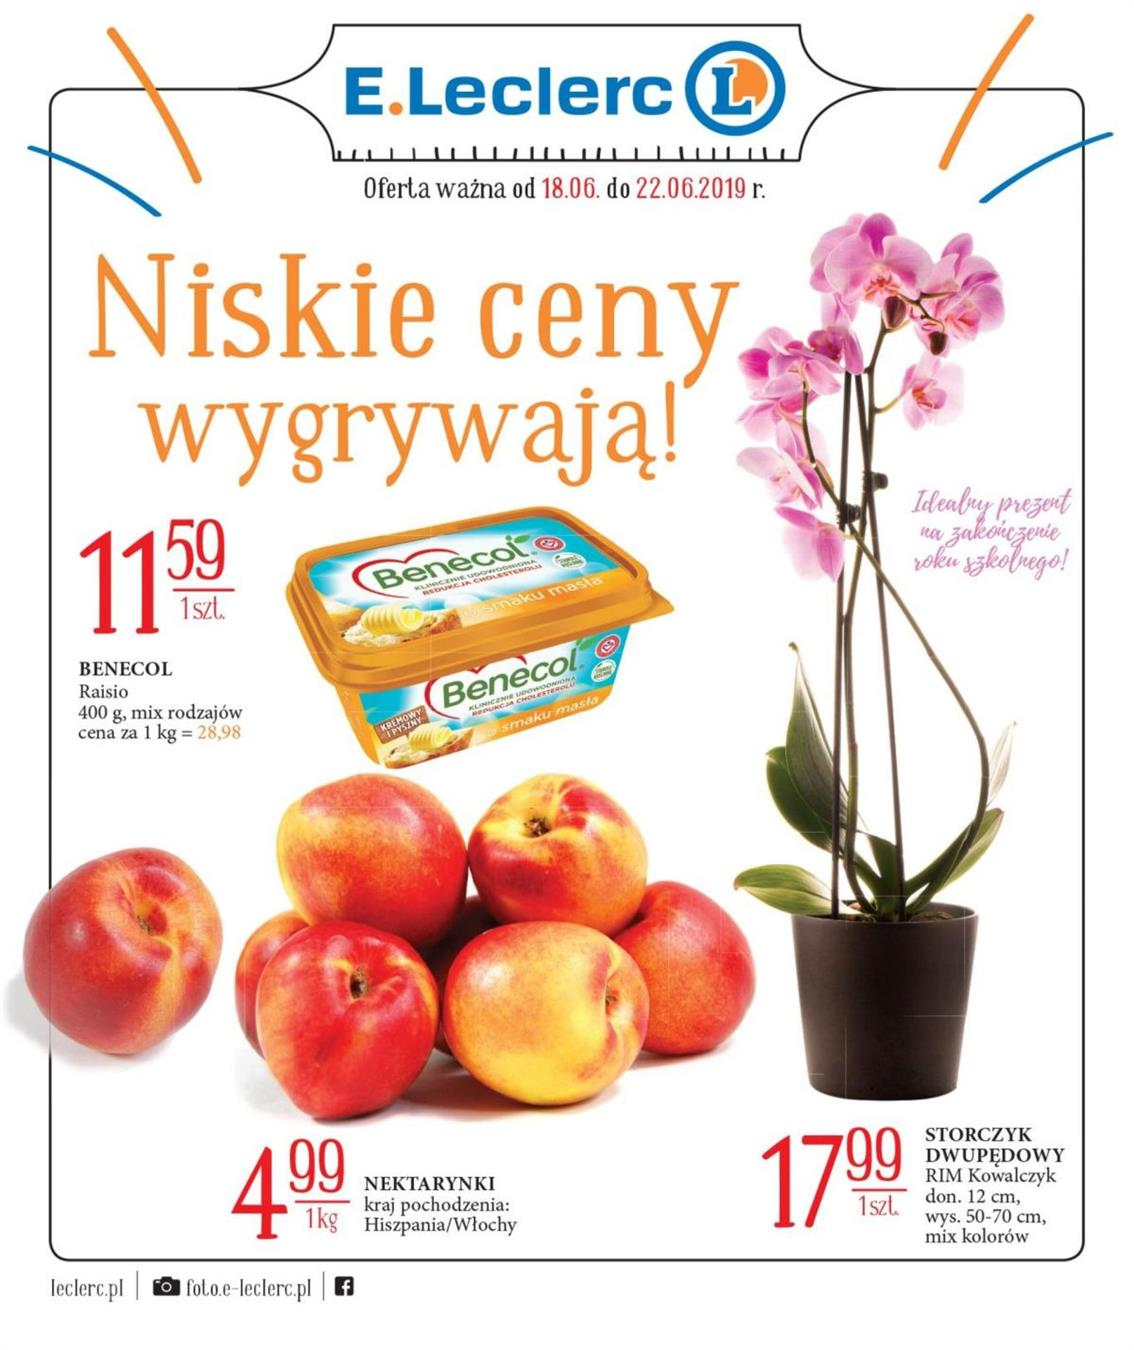 Gazetka Galec Sp. z o.o  nr 1 od 2019-06-18 do 2019-06-22